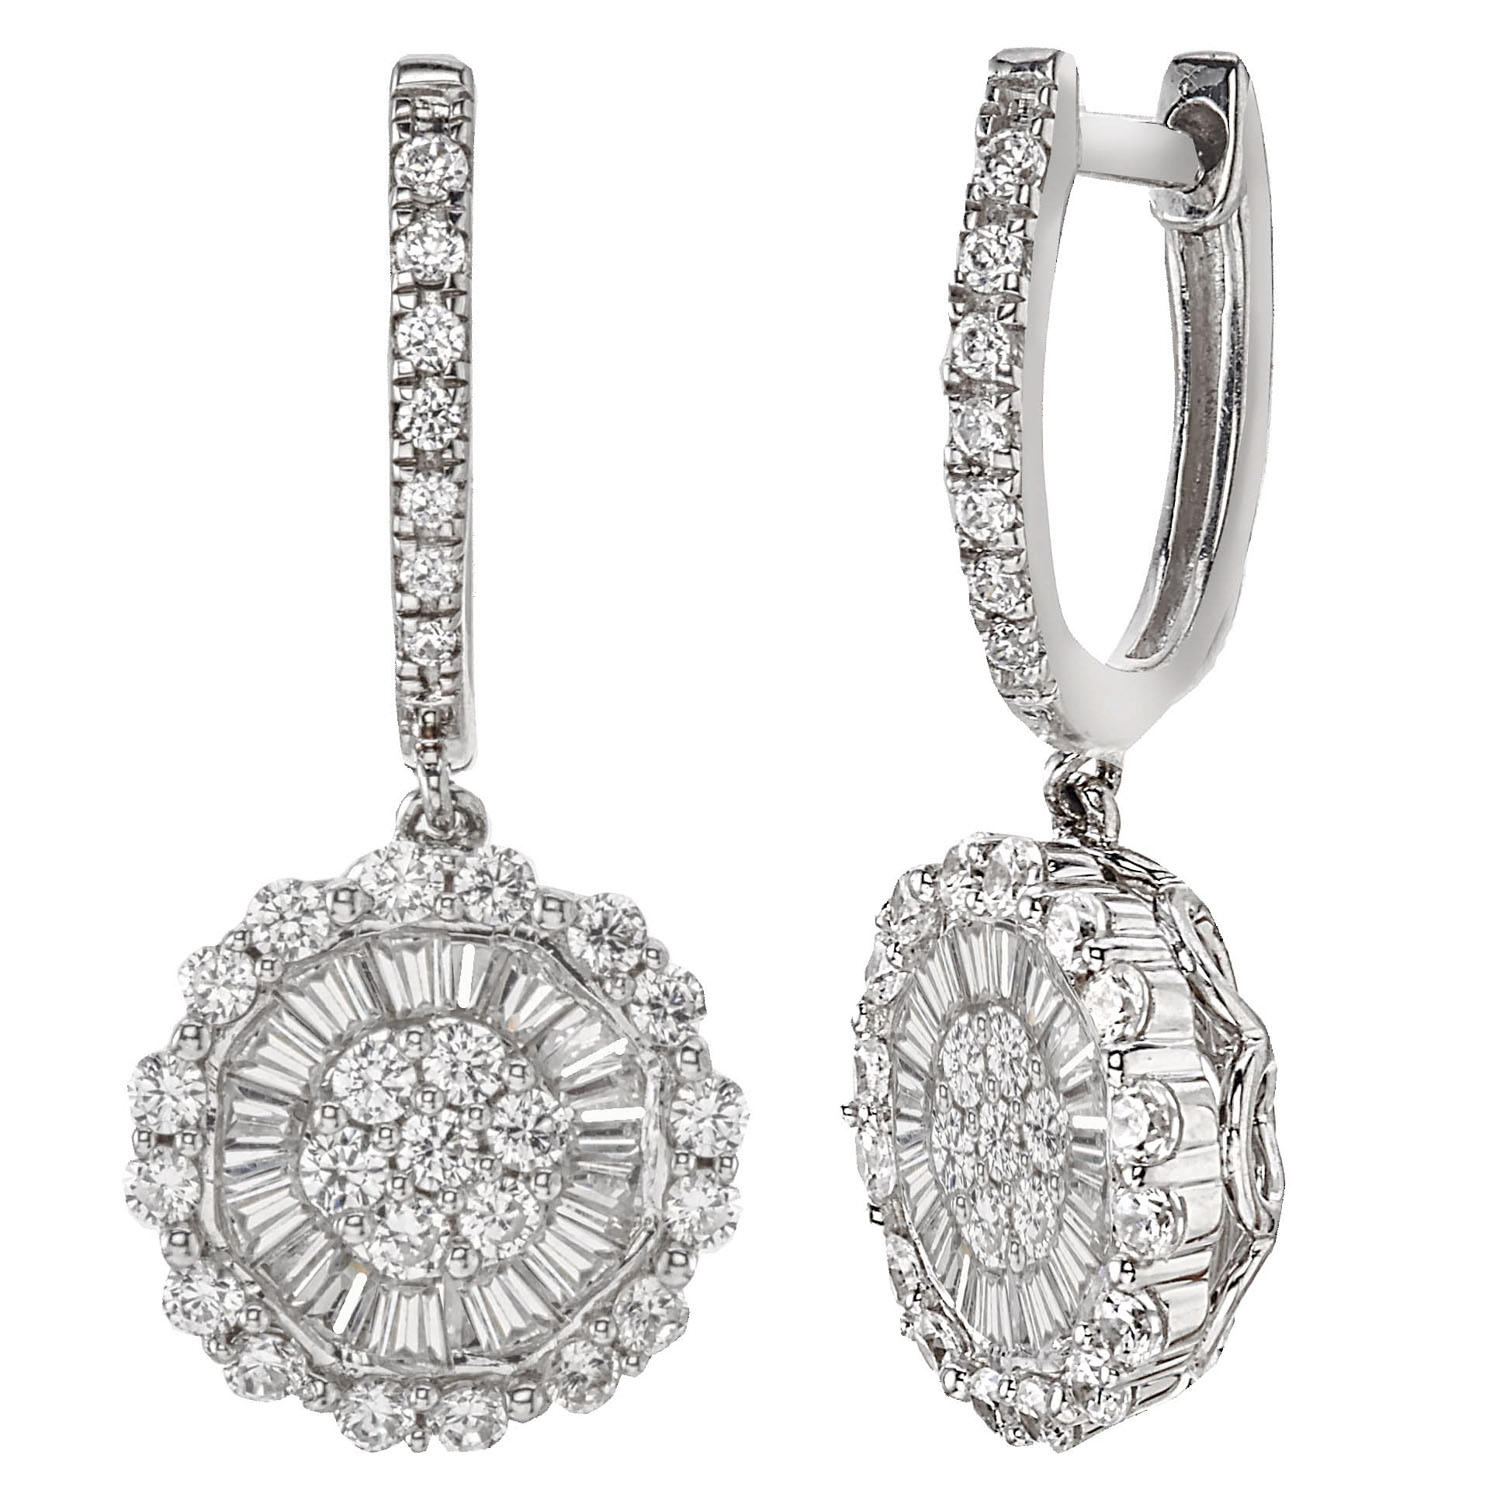 1.23 CT. T.W. Diamond Drop Earrings in 14K White Gold